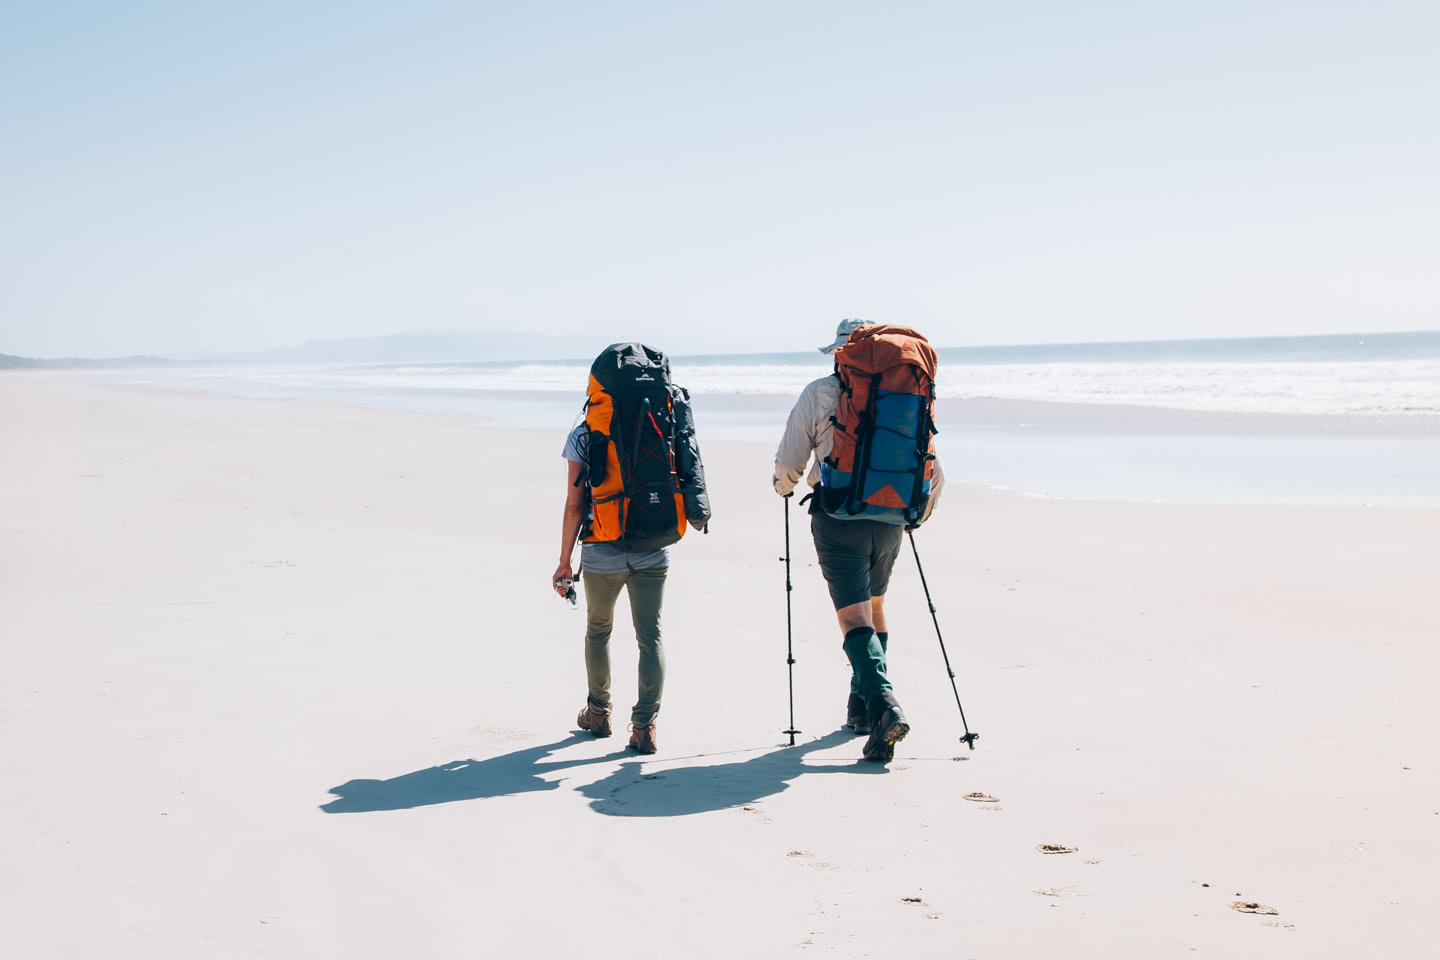 In Search Of A Rainbow // The Cooloola Great Walk (QLD) Jesse Lindemann, hikers, poles, sand beach, ocean, footprints, hero